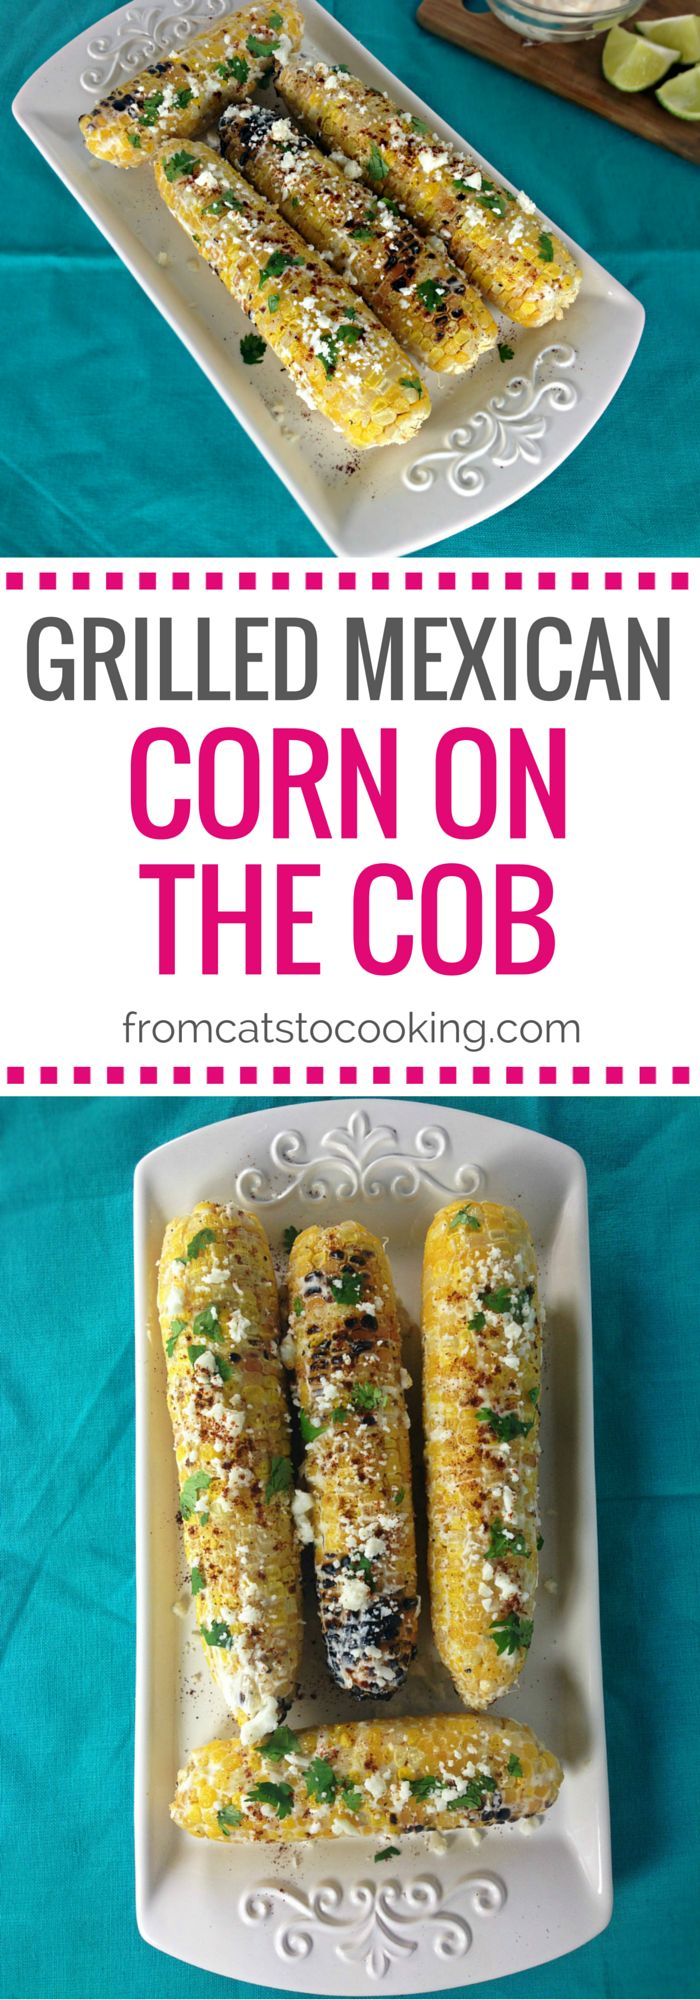 """This Grilled Mexican Corn on the Cob recipe is also known as Mexican """"Street"""" Corn. It's a great side dish for the spring and summer months and is gluten-free."""